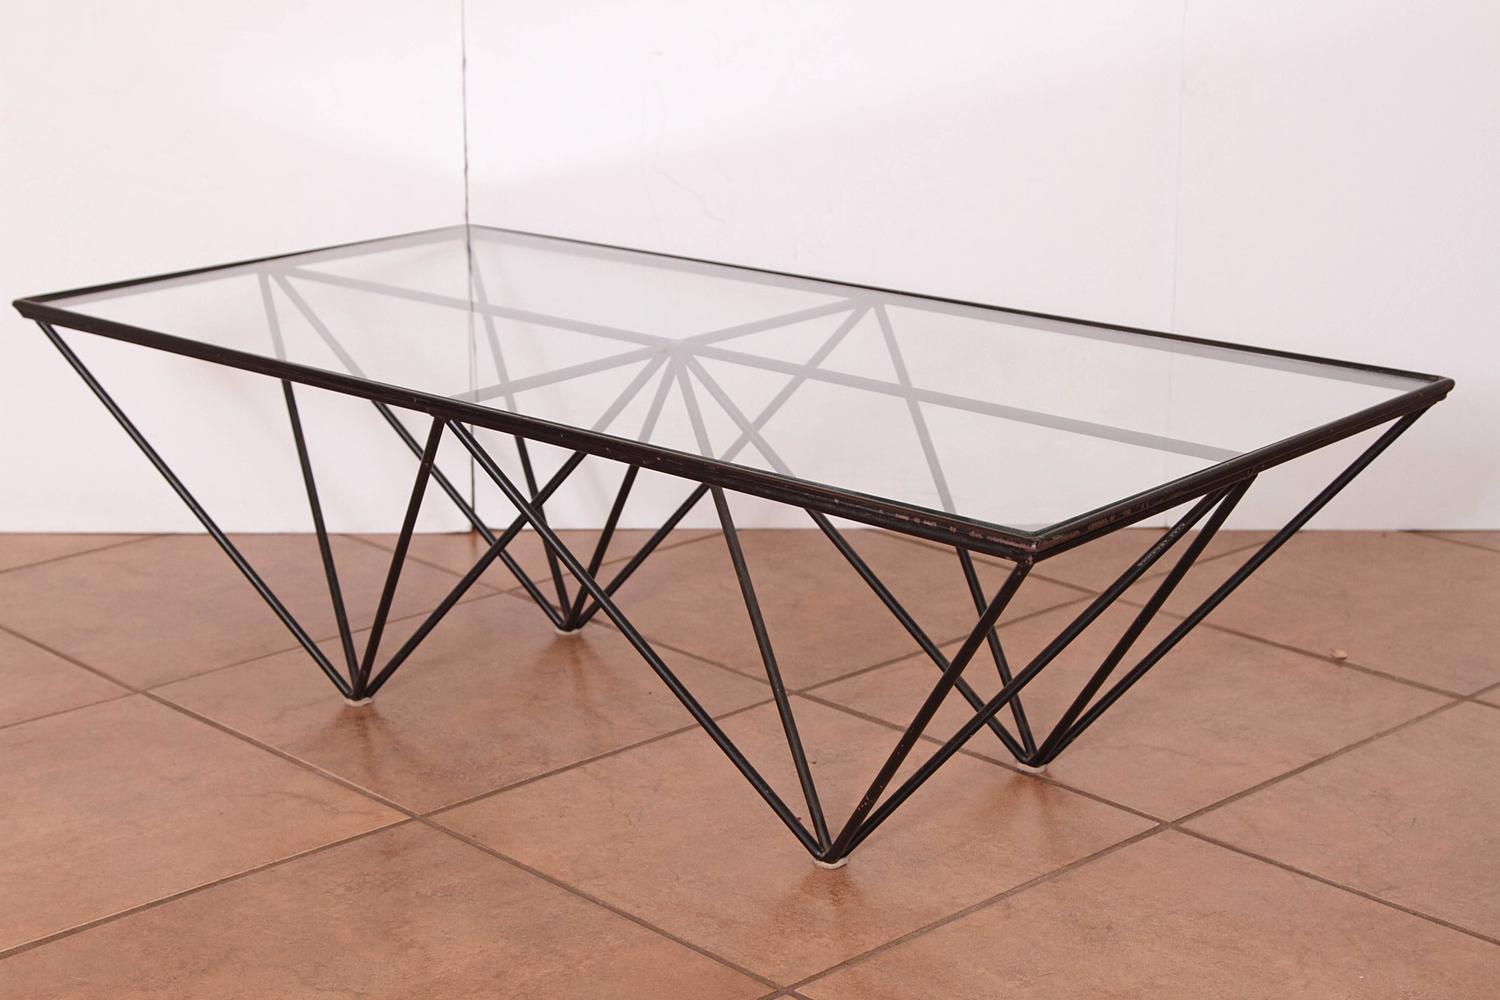 Paolo Piva Wrought Iron And Glass Alanda Coffee Table B B Italia Circa Early 1980 At 1stdibs